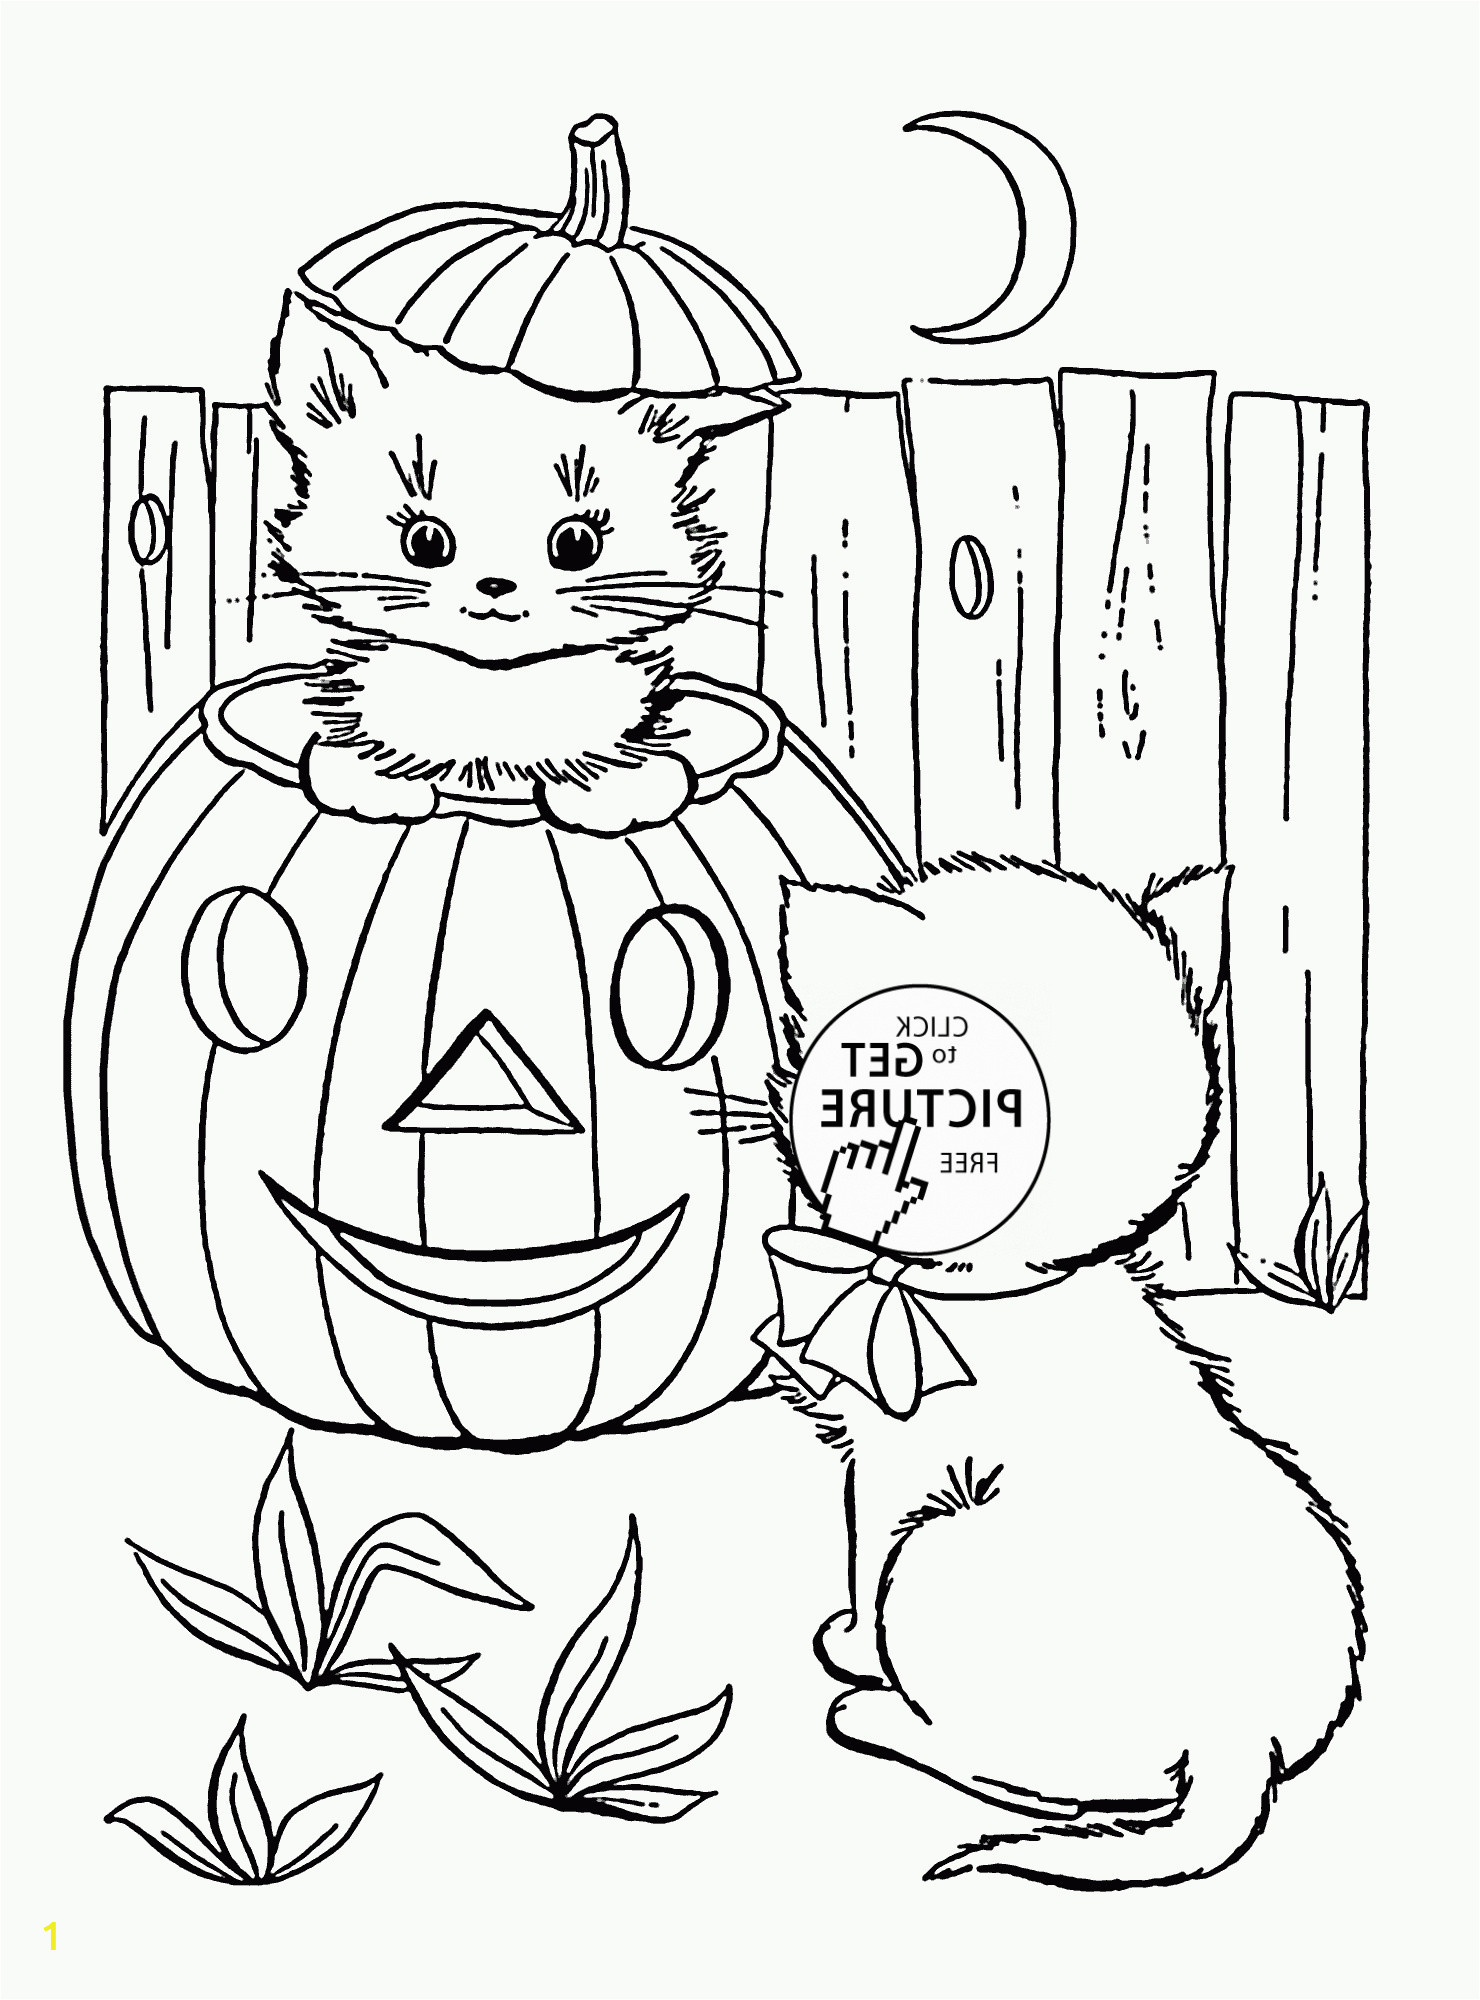 printable halloween coloring page beautiful photography halloween coloring pages printable disney halloween cat coloring of printable halloween coloring page